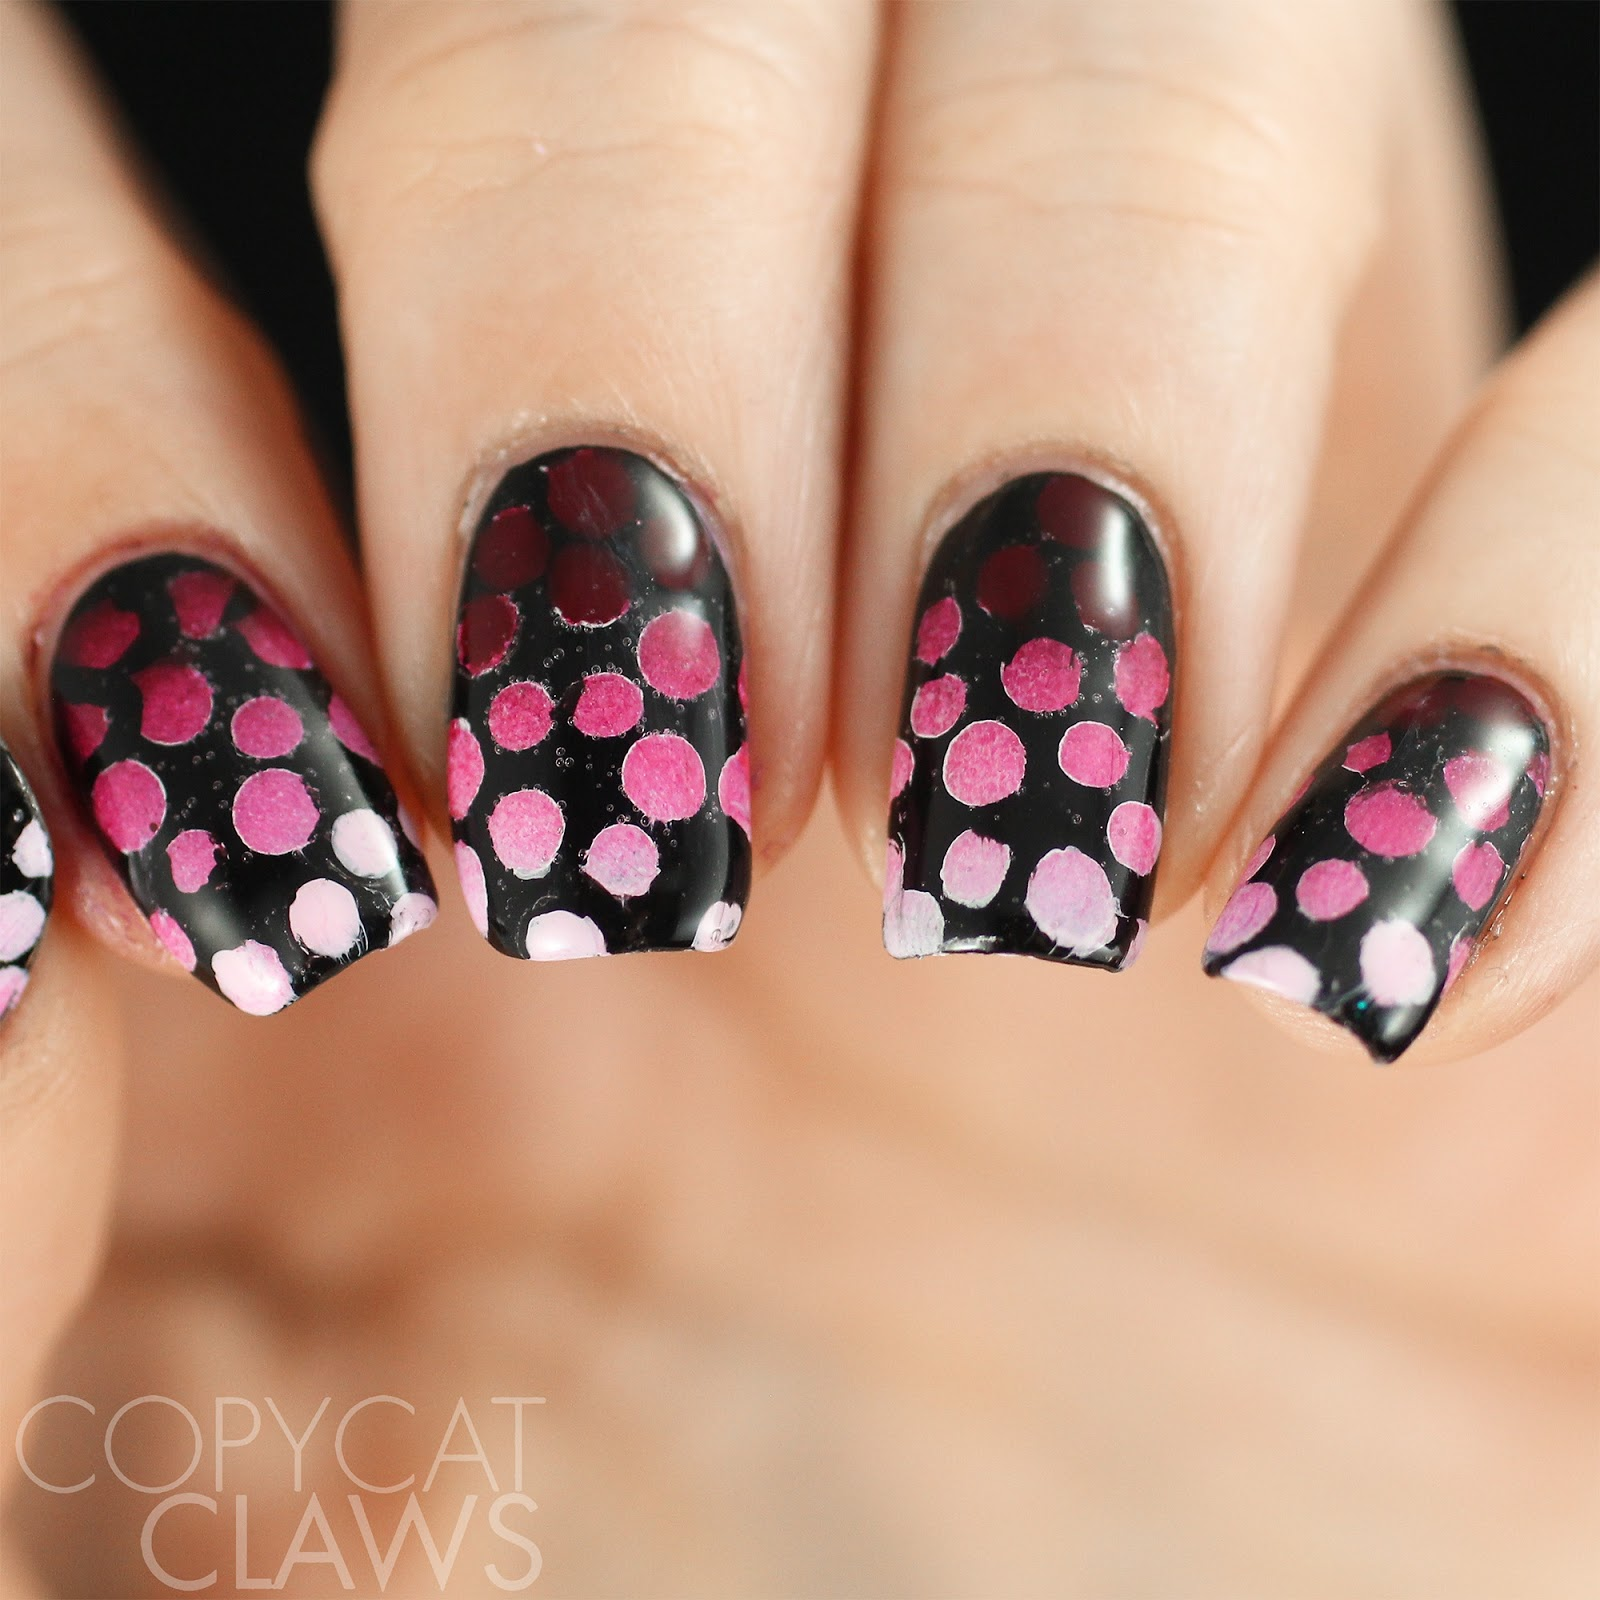 Copycat Claws: 26 Great Nail Art Ideas - Red and Pink